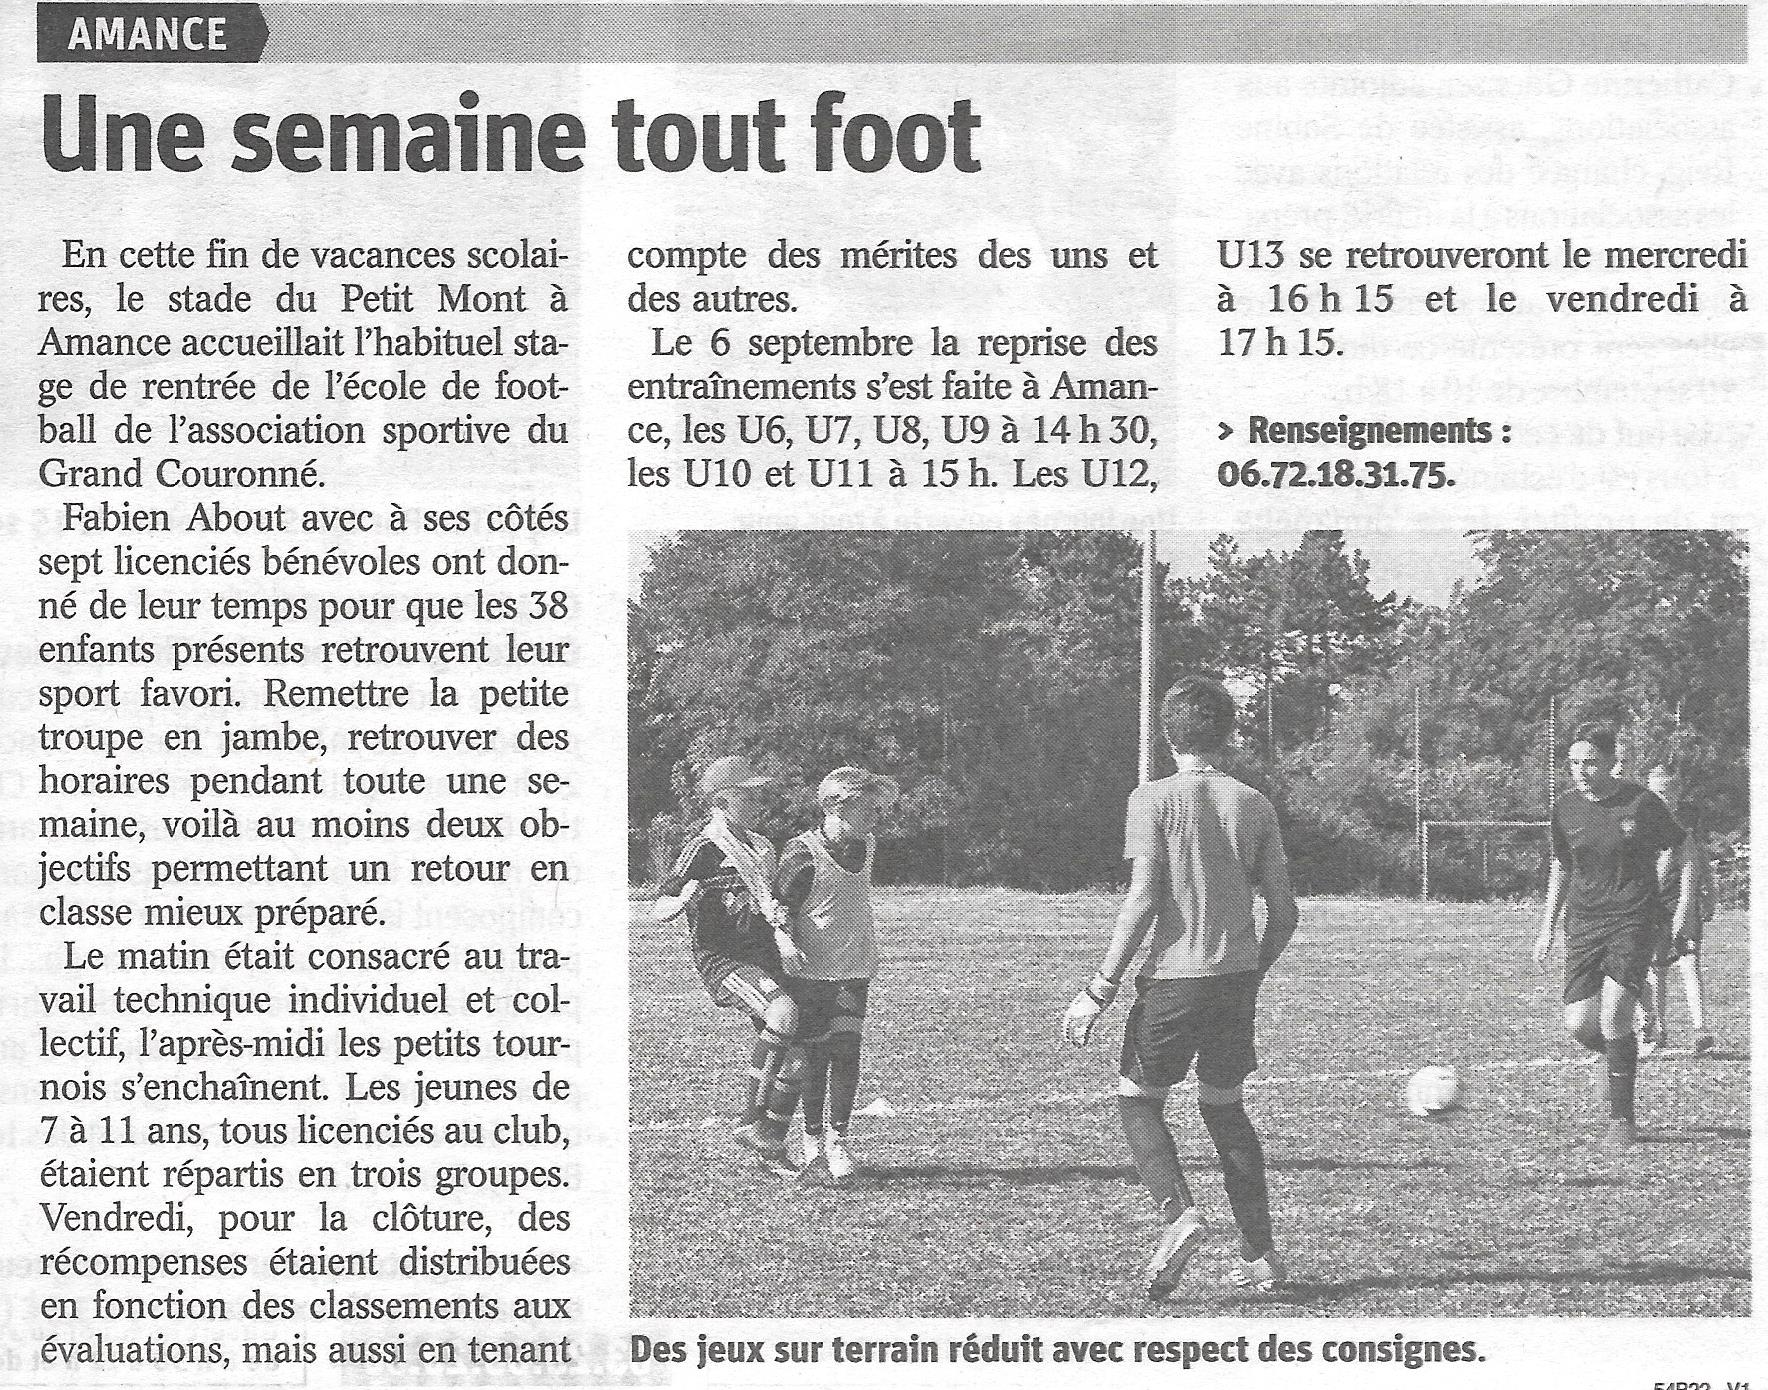 2017 09 07 une-semaine-tout-foot-article.jpg